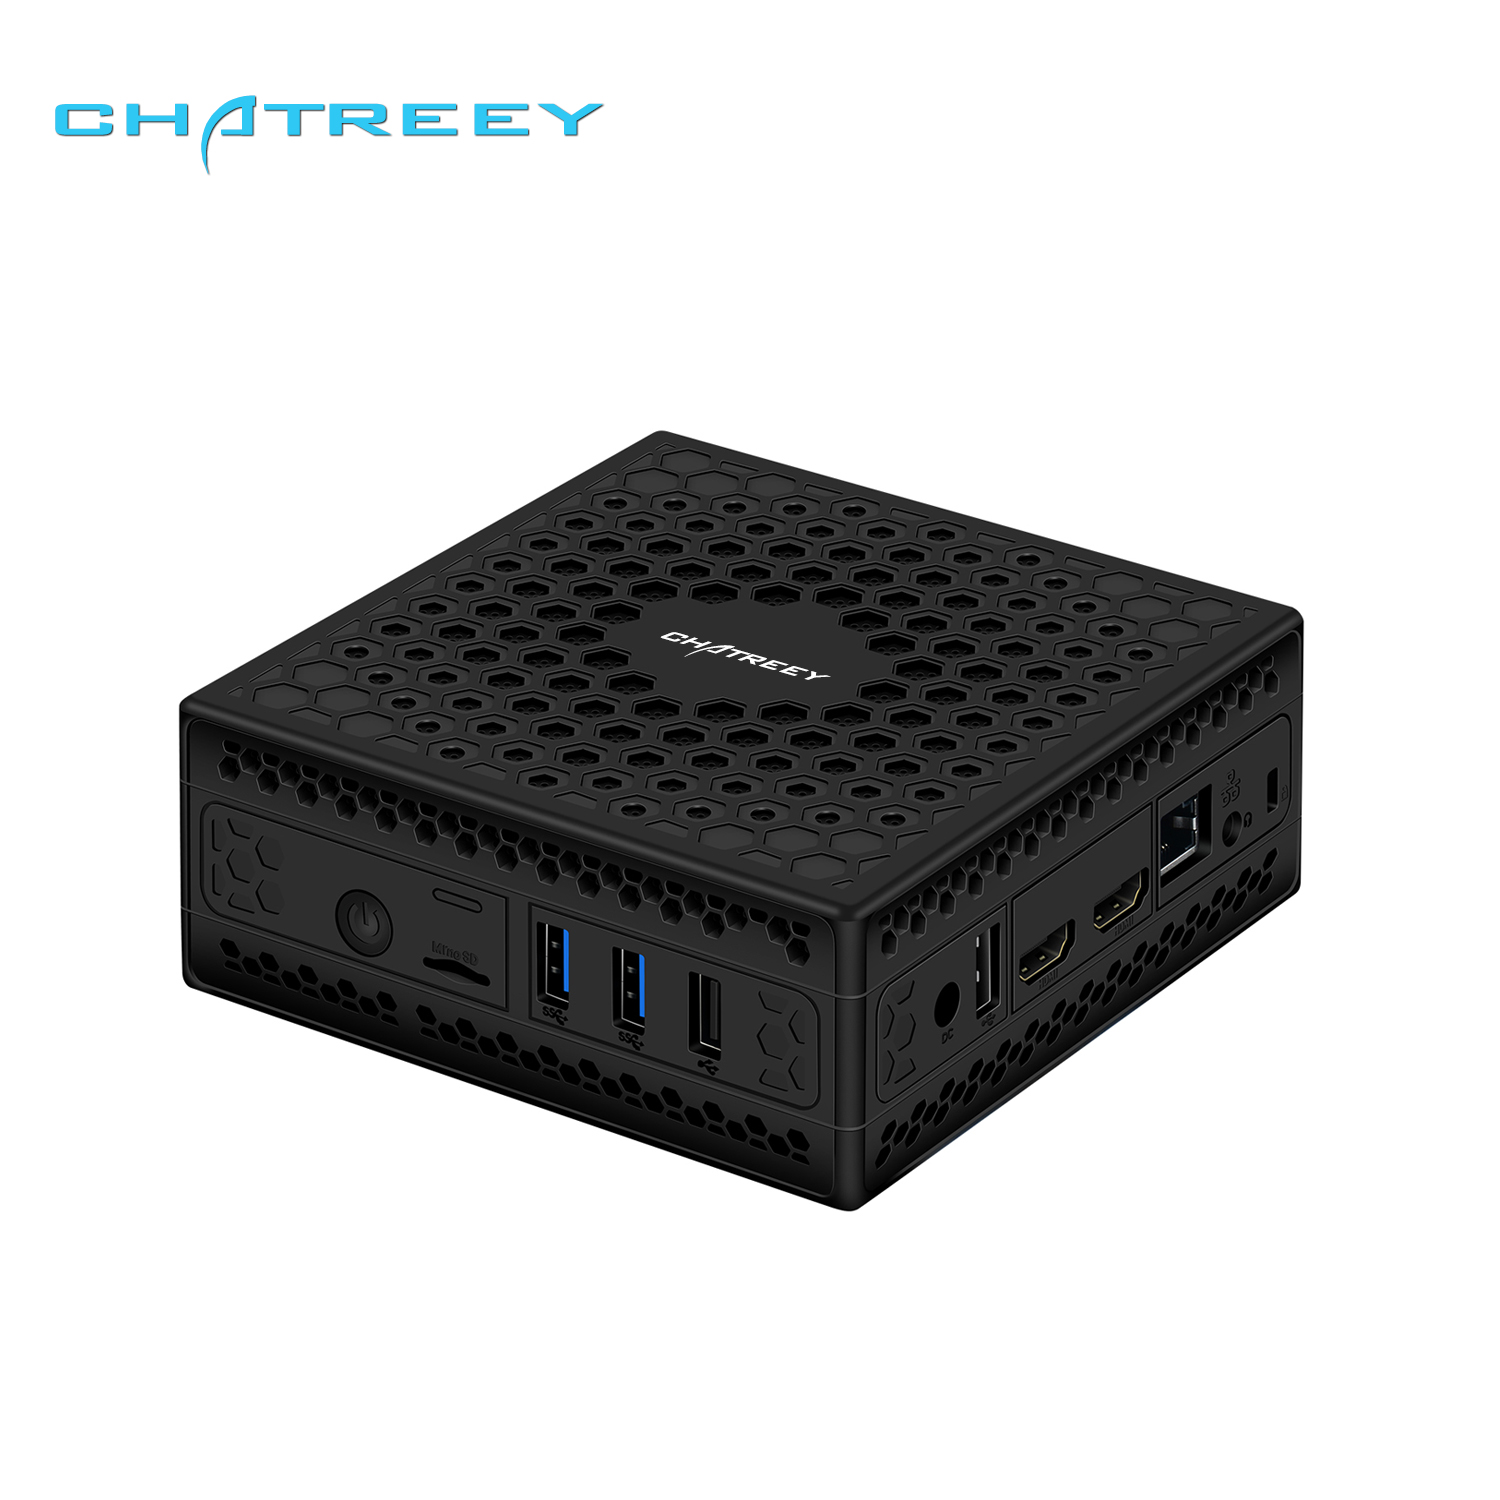 Chatreey AC1-Z incorporado Fanless mini pc Intel celeron j3455 10 j4105 quad core dual display HDMI windows linux HTPC GABINETE do computador